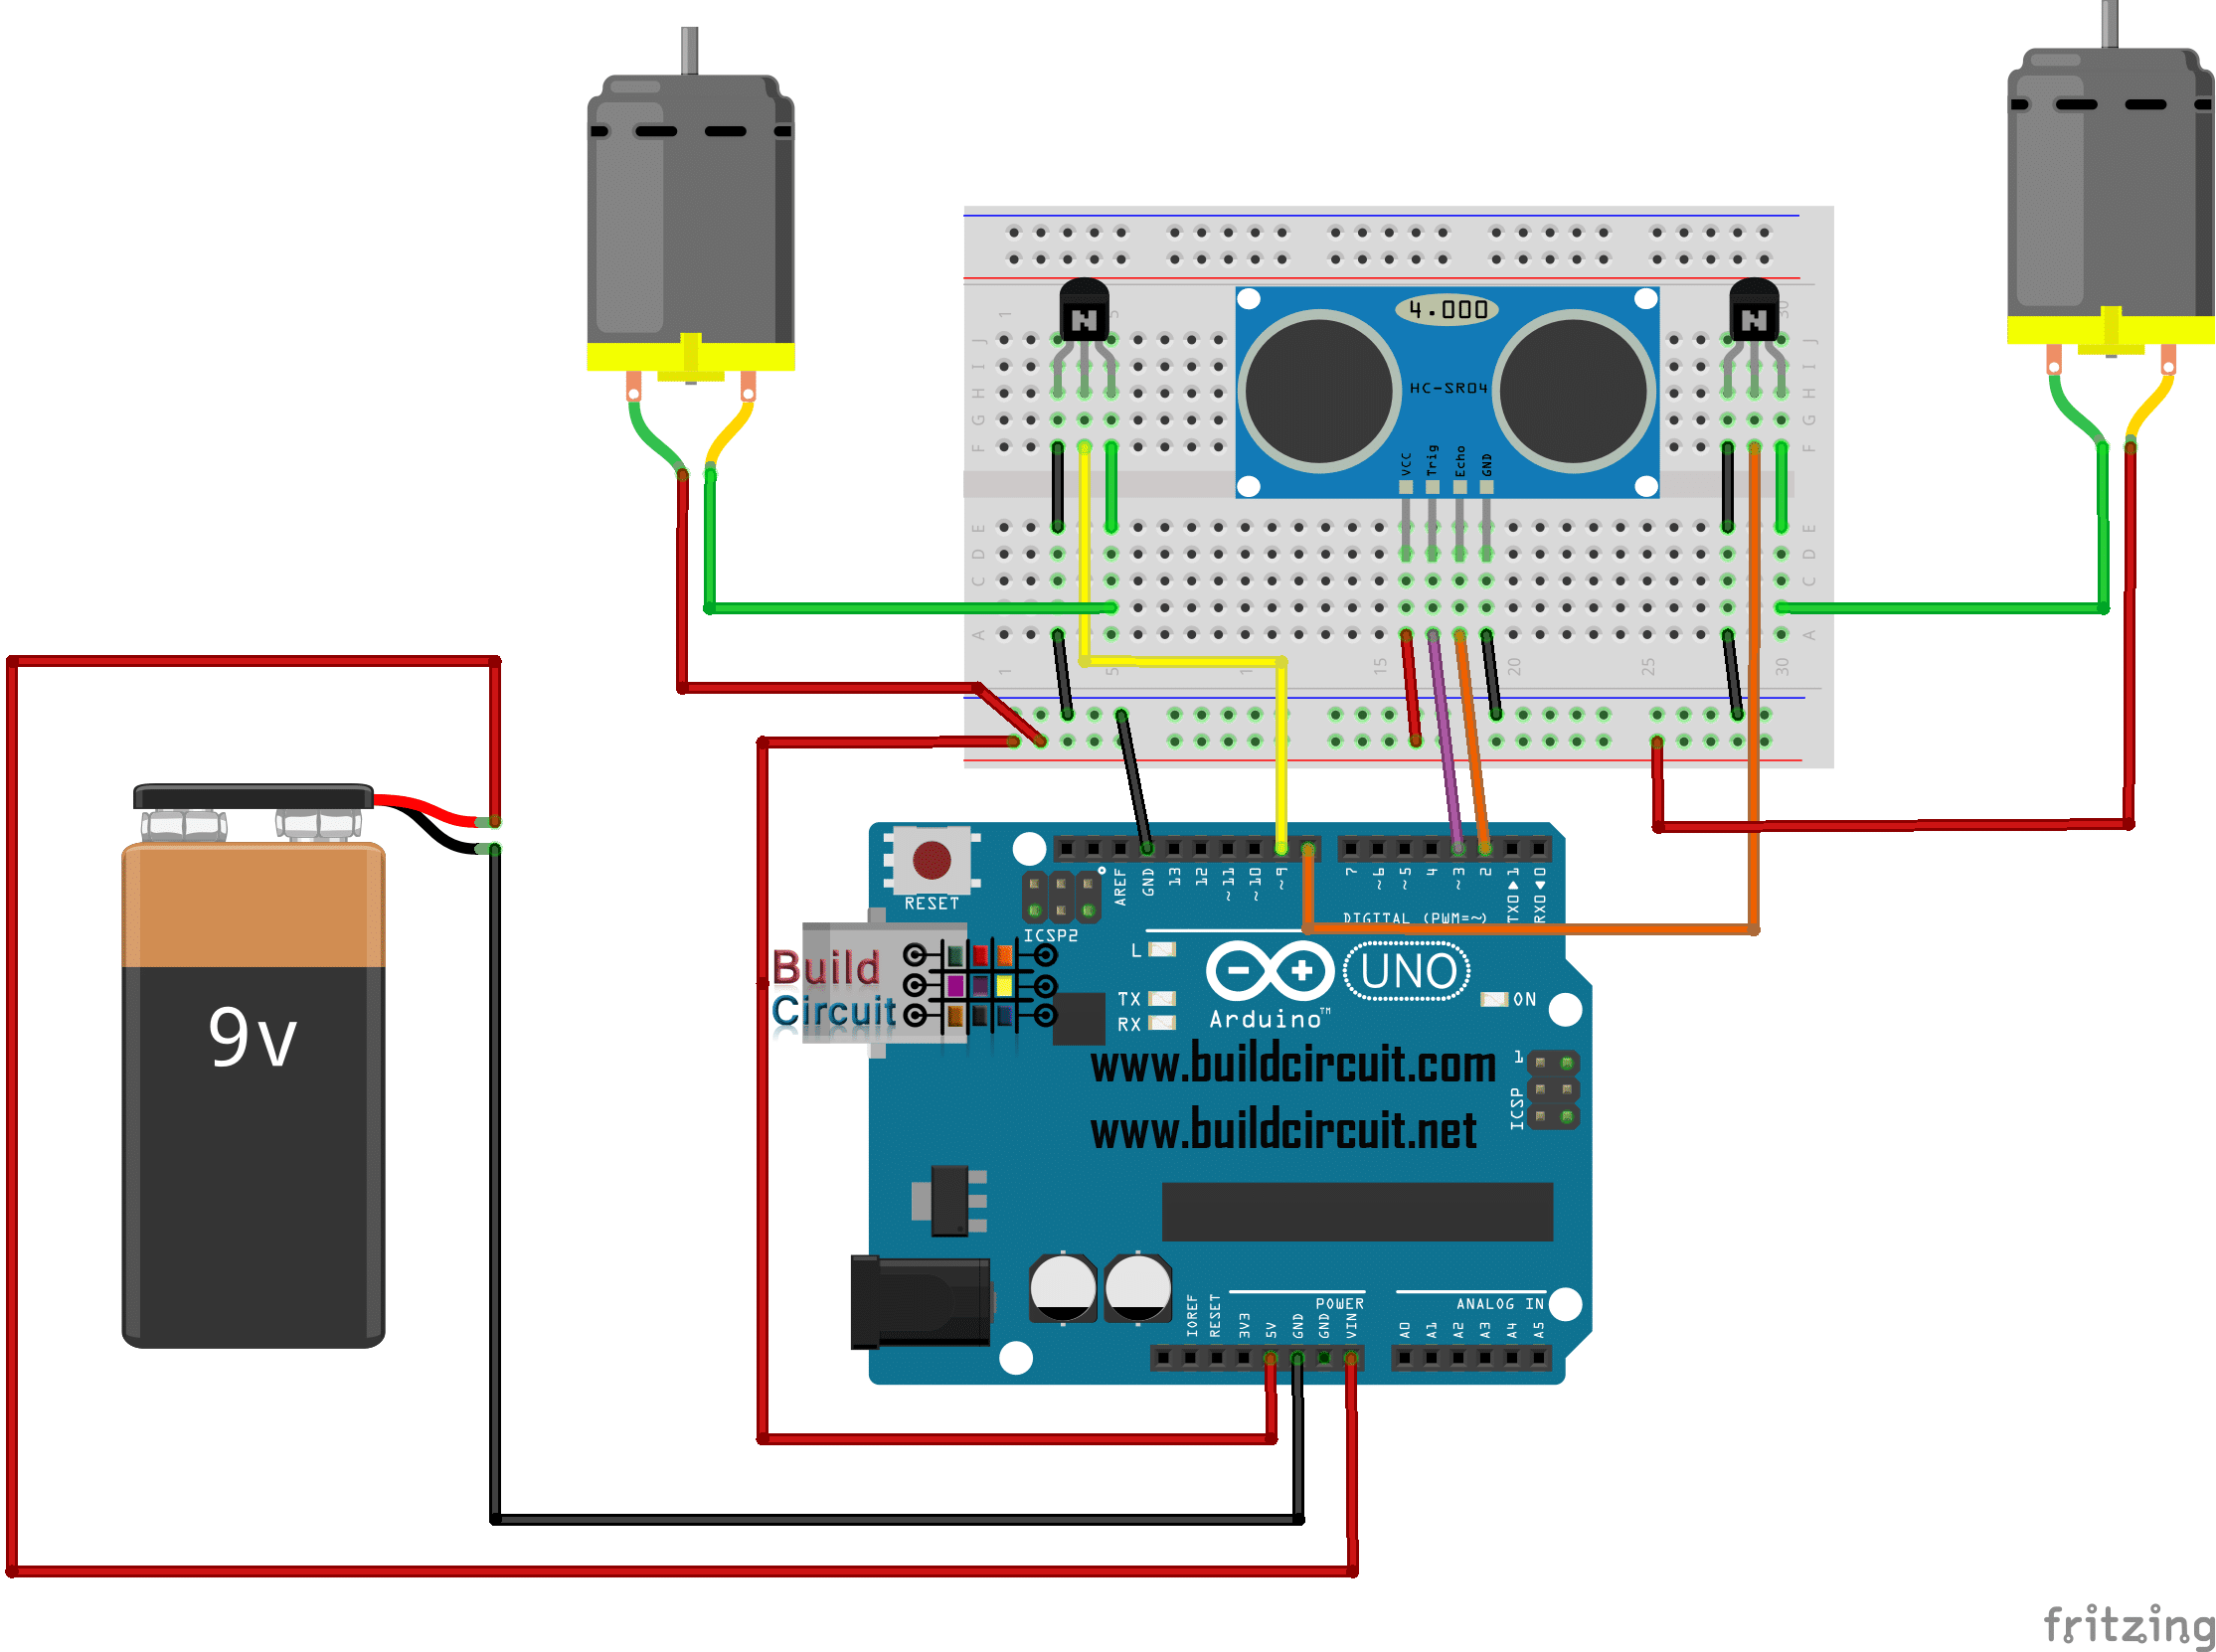 Wiring Diagram For Arduino Robot Kit Updated - Wiring Diagram Content